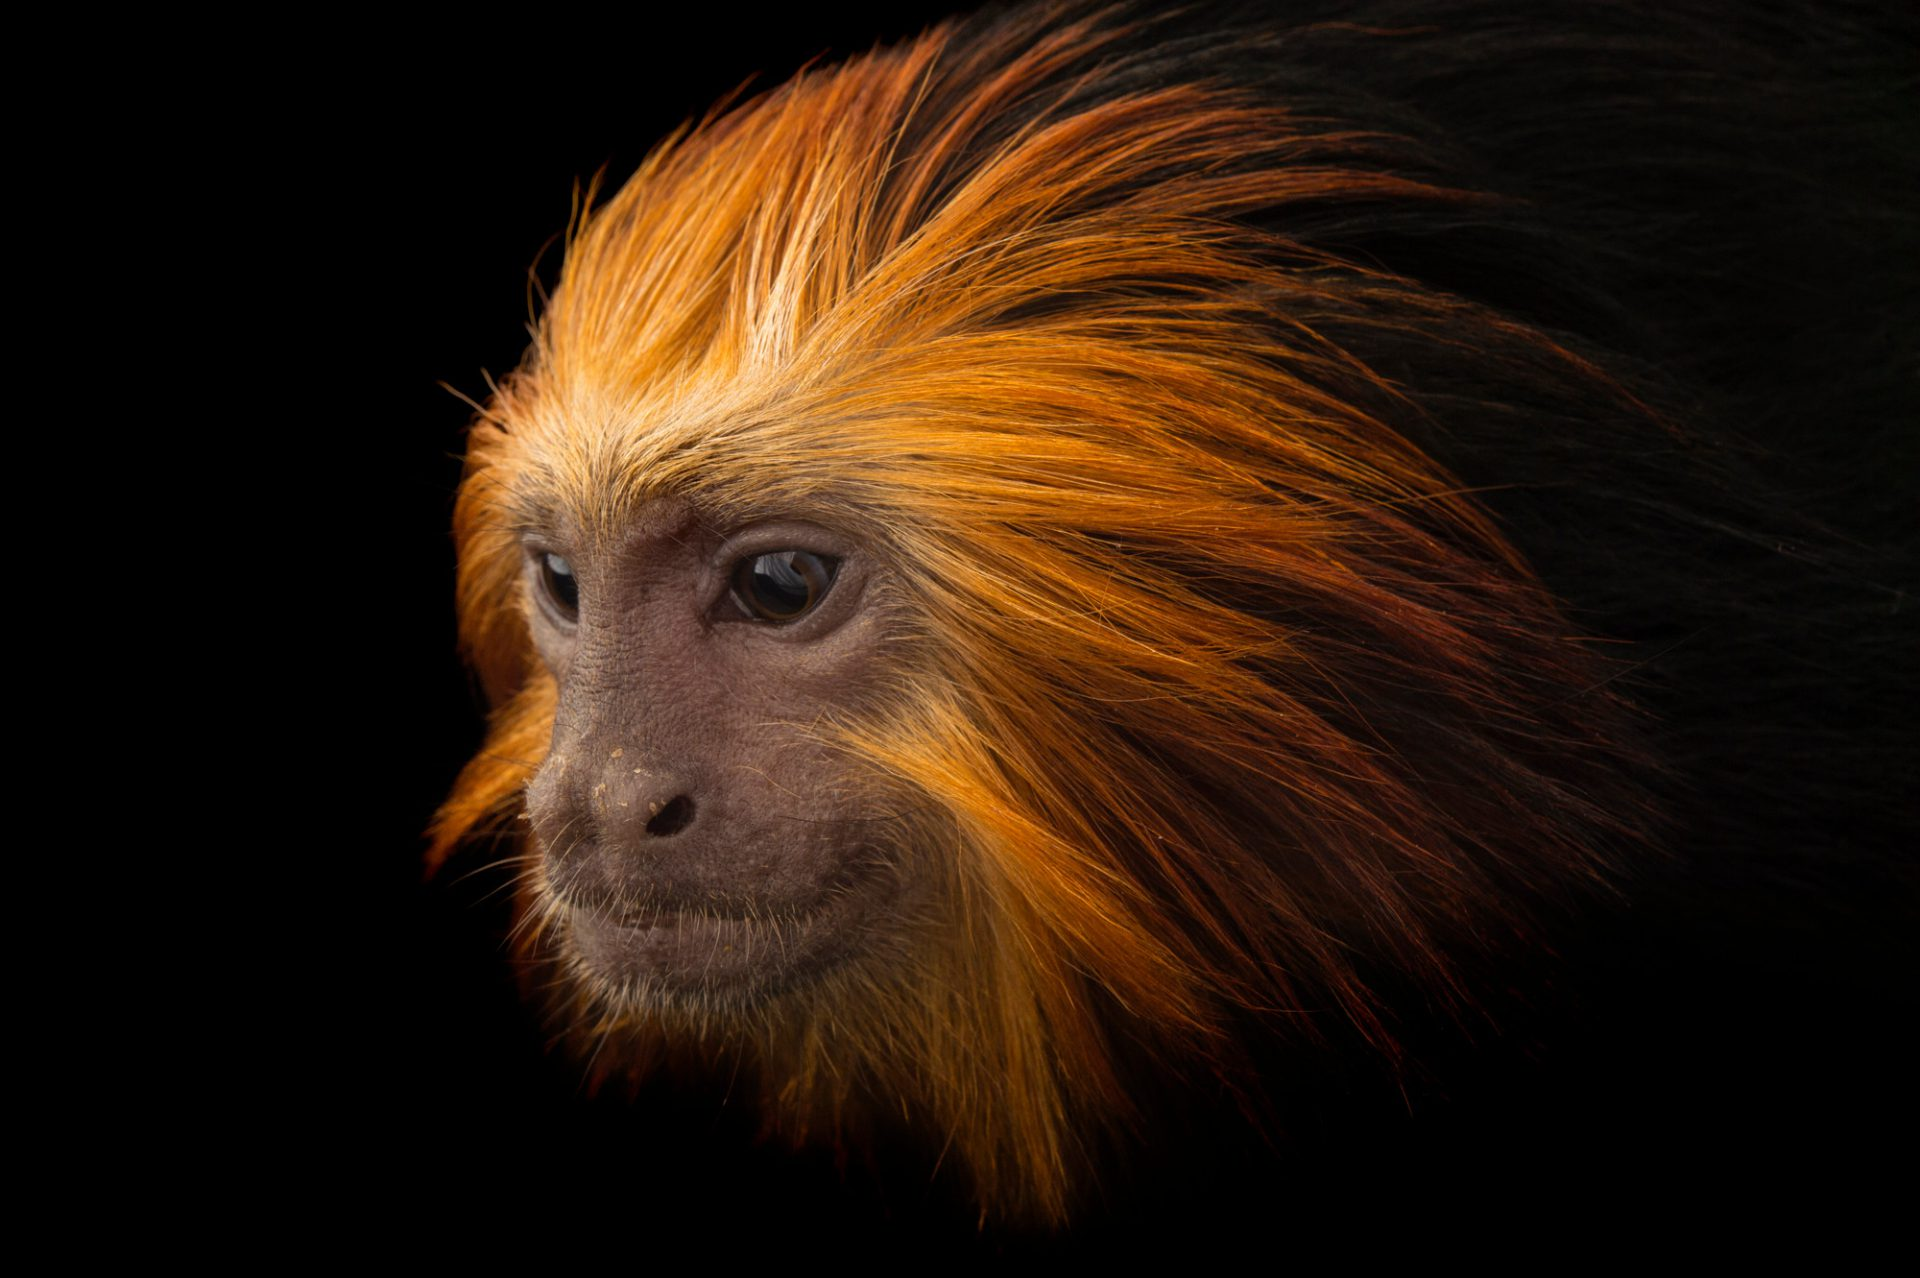 Picture of an endangered golden-headed lion tamarin (Leontopithecus chrysomelas) at the Dallas World Aquarium.